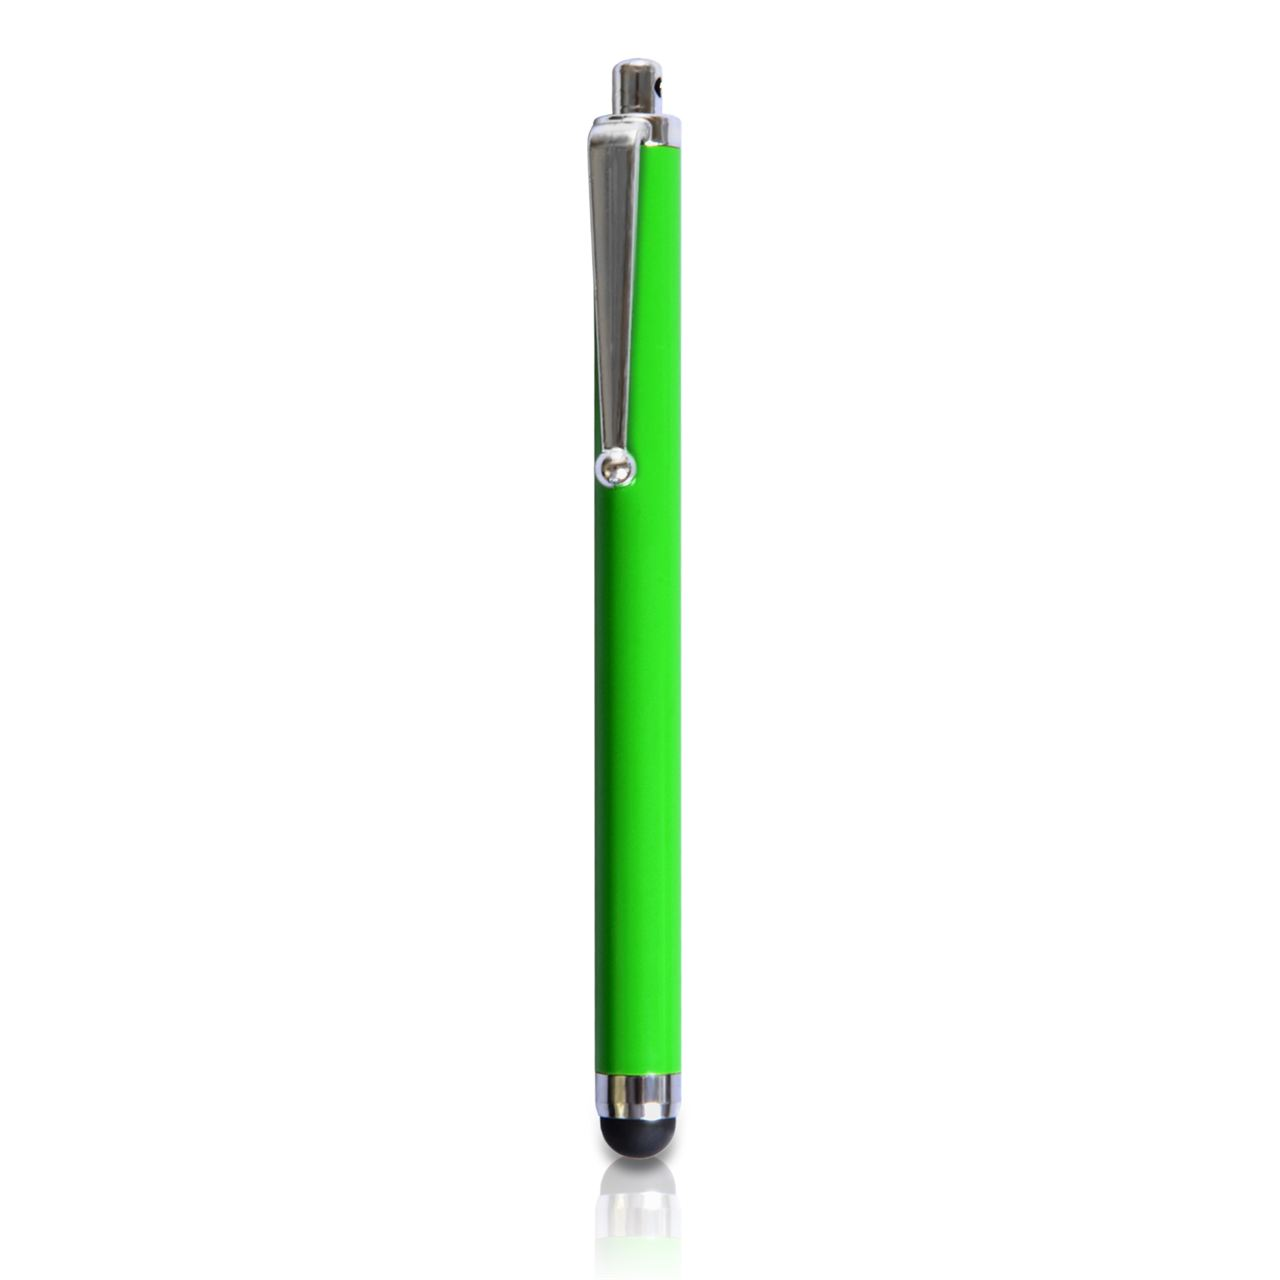 YouSave Accessories Stylus Pen - Green